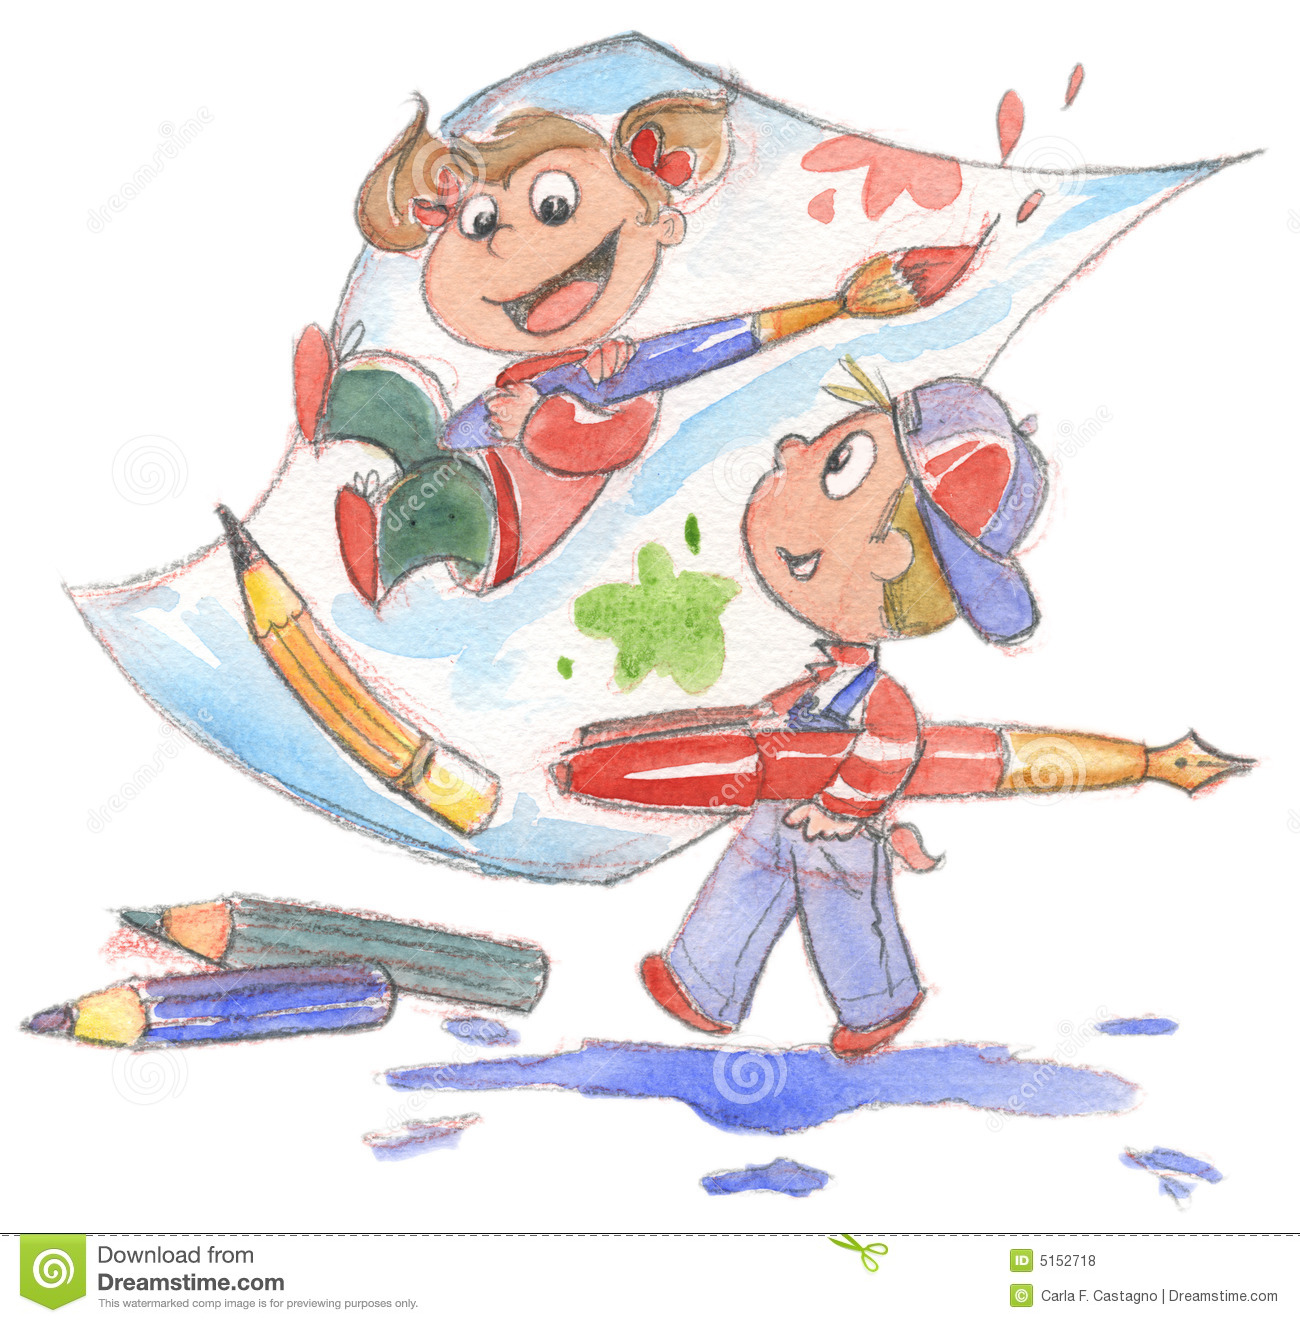 kids painting watercolor royalty free stock photos - Kids Painting Images